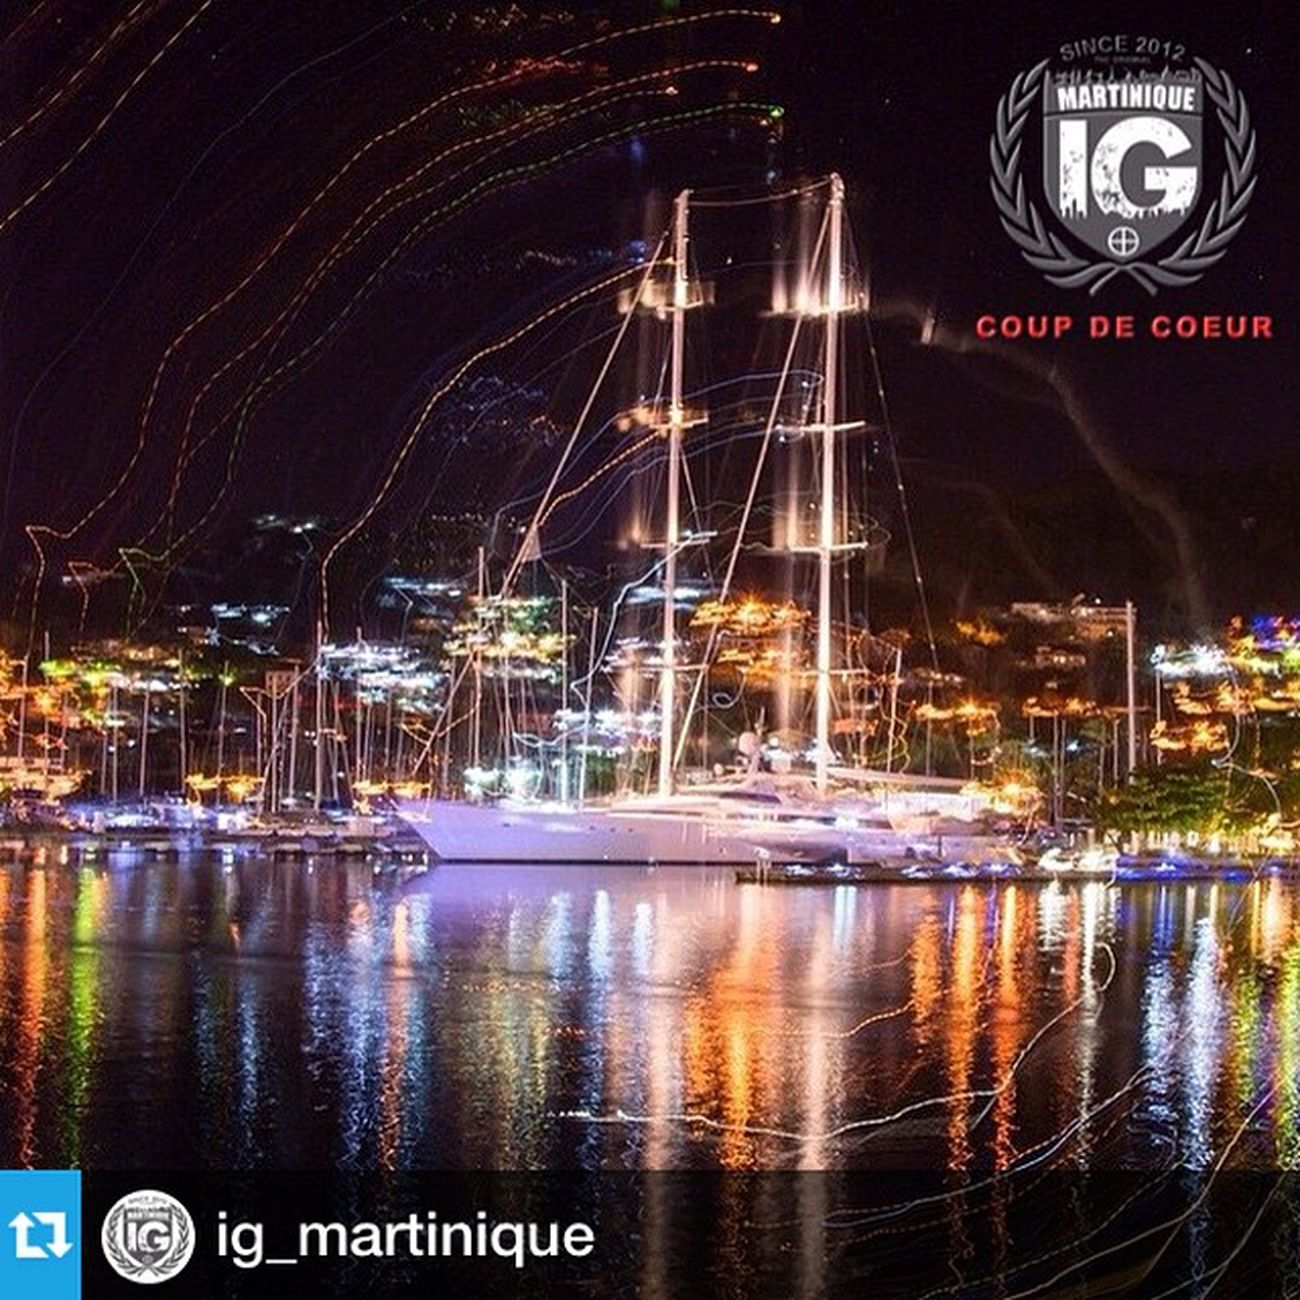 Repost from @ig_martinique with @repostapp --- Presente ⠀ COUP DE COEUR P H O T O| @duppykankera P L A C E | World S E L E C T E D B Y | Admin Group F E A T U R E D T A G | Ig_martinique Martinique ⠀ M A I L | igworldclub@gmail.com S O C I A L | Facebook • Twitter M E M B E R S | @igworldclub_officialaccount ⠀ C O U N T R Y R E Q U I R E D | If you want to join us and open an igworldclub account of your country or city, please write us or go to www.igworldclub.it ⠀ F O L L O W S U S | @Igworldclub @Ig_Martinique @ig_caribbean Igd_101914